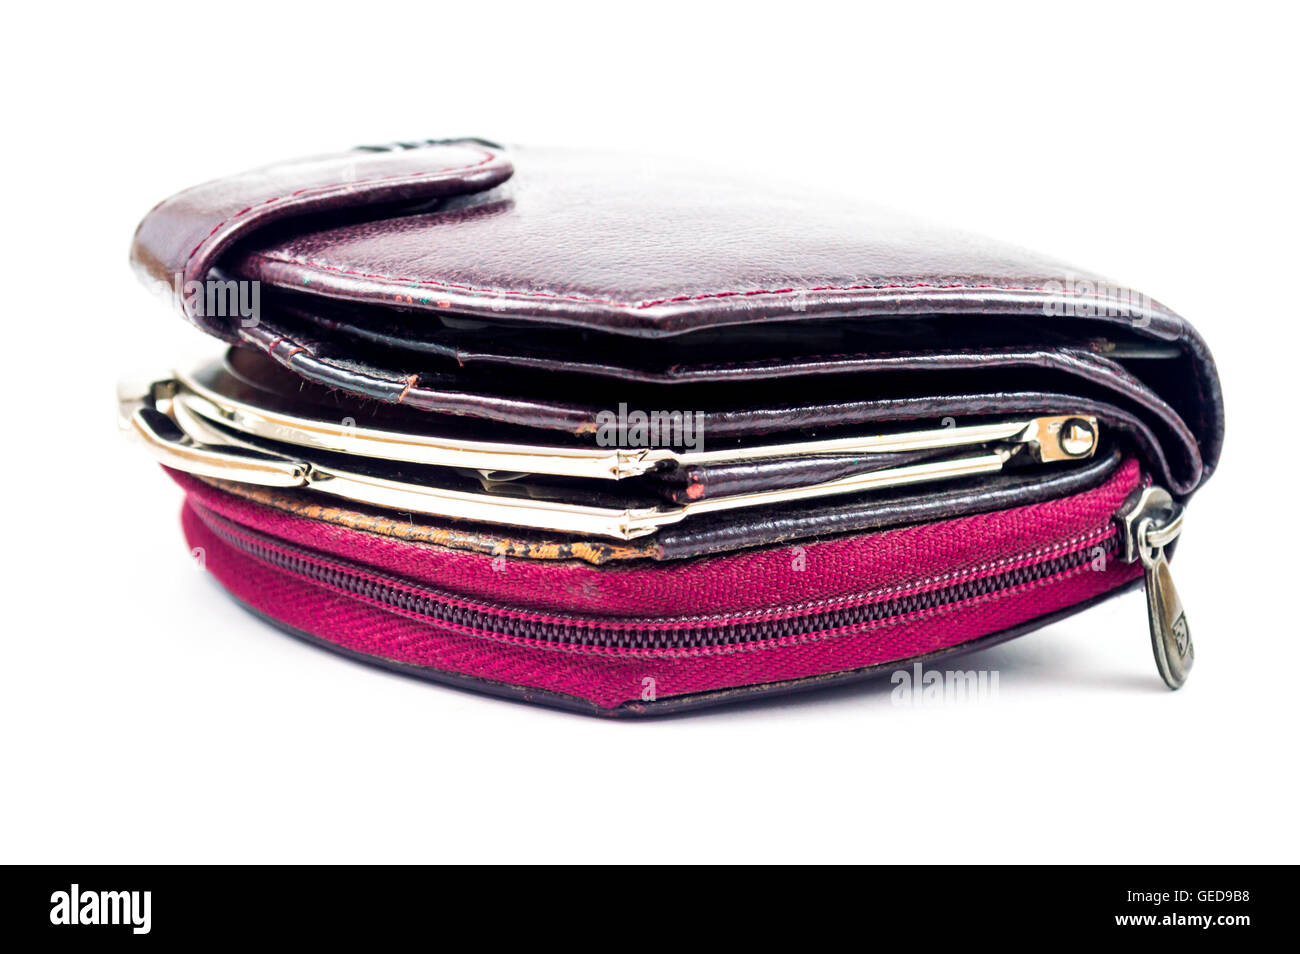 used worn out ladies leather wallets on white background - Stock Image